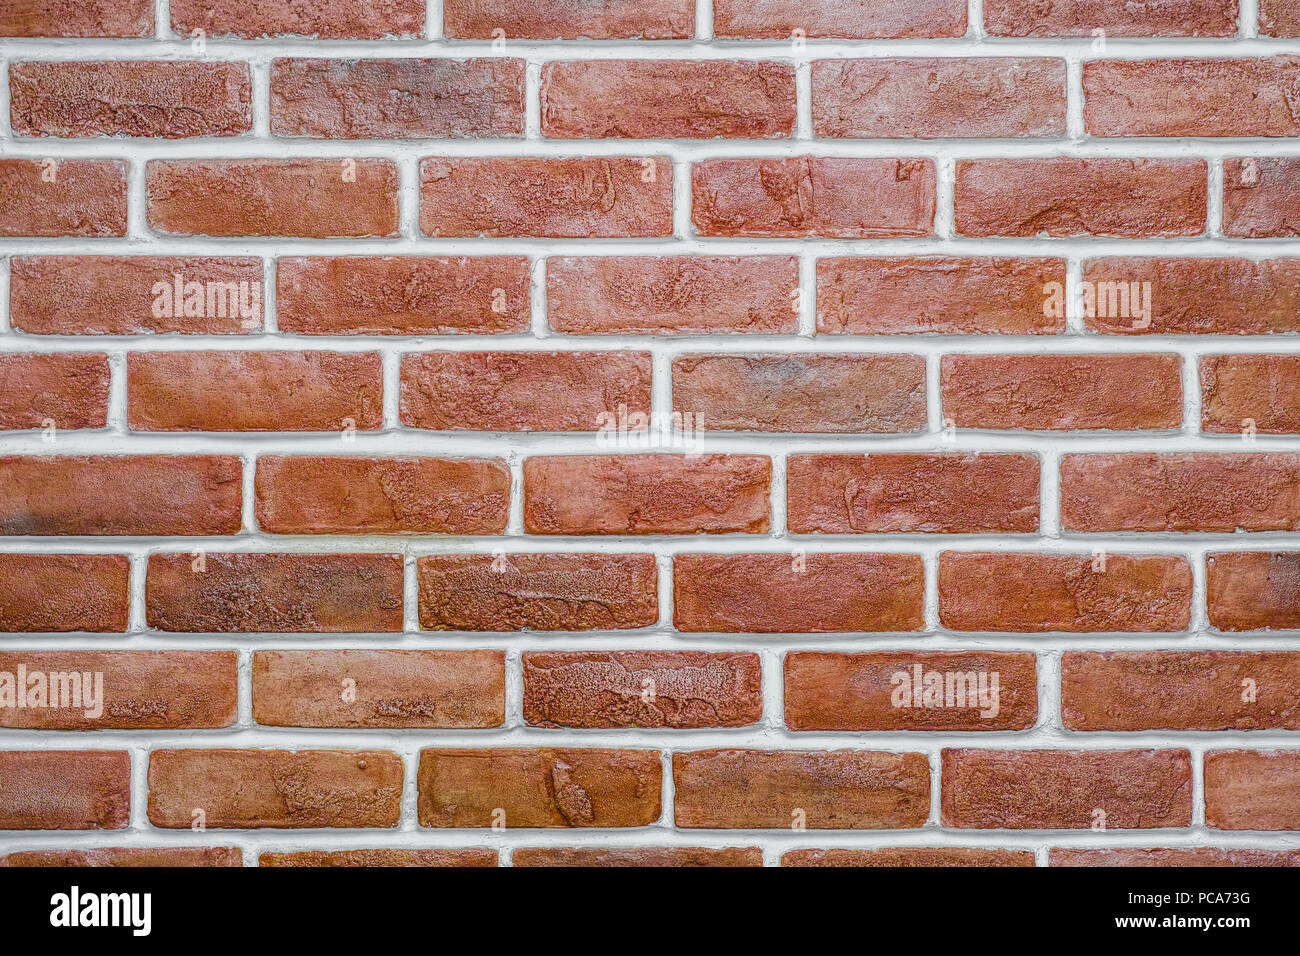 Brick Wall Design Red Brick Wall Texture Design Empty Red Brick Background For